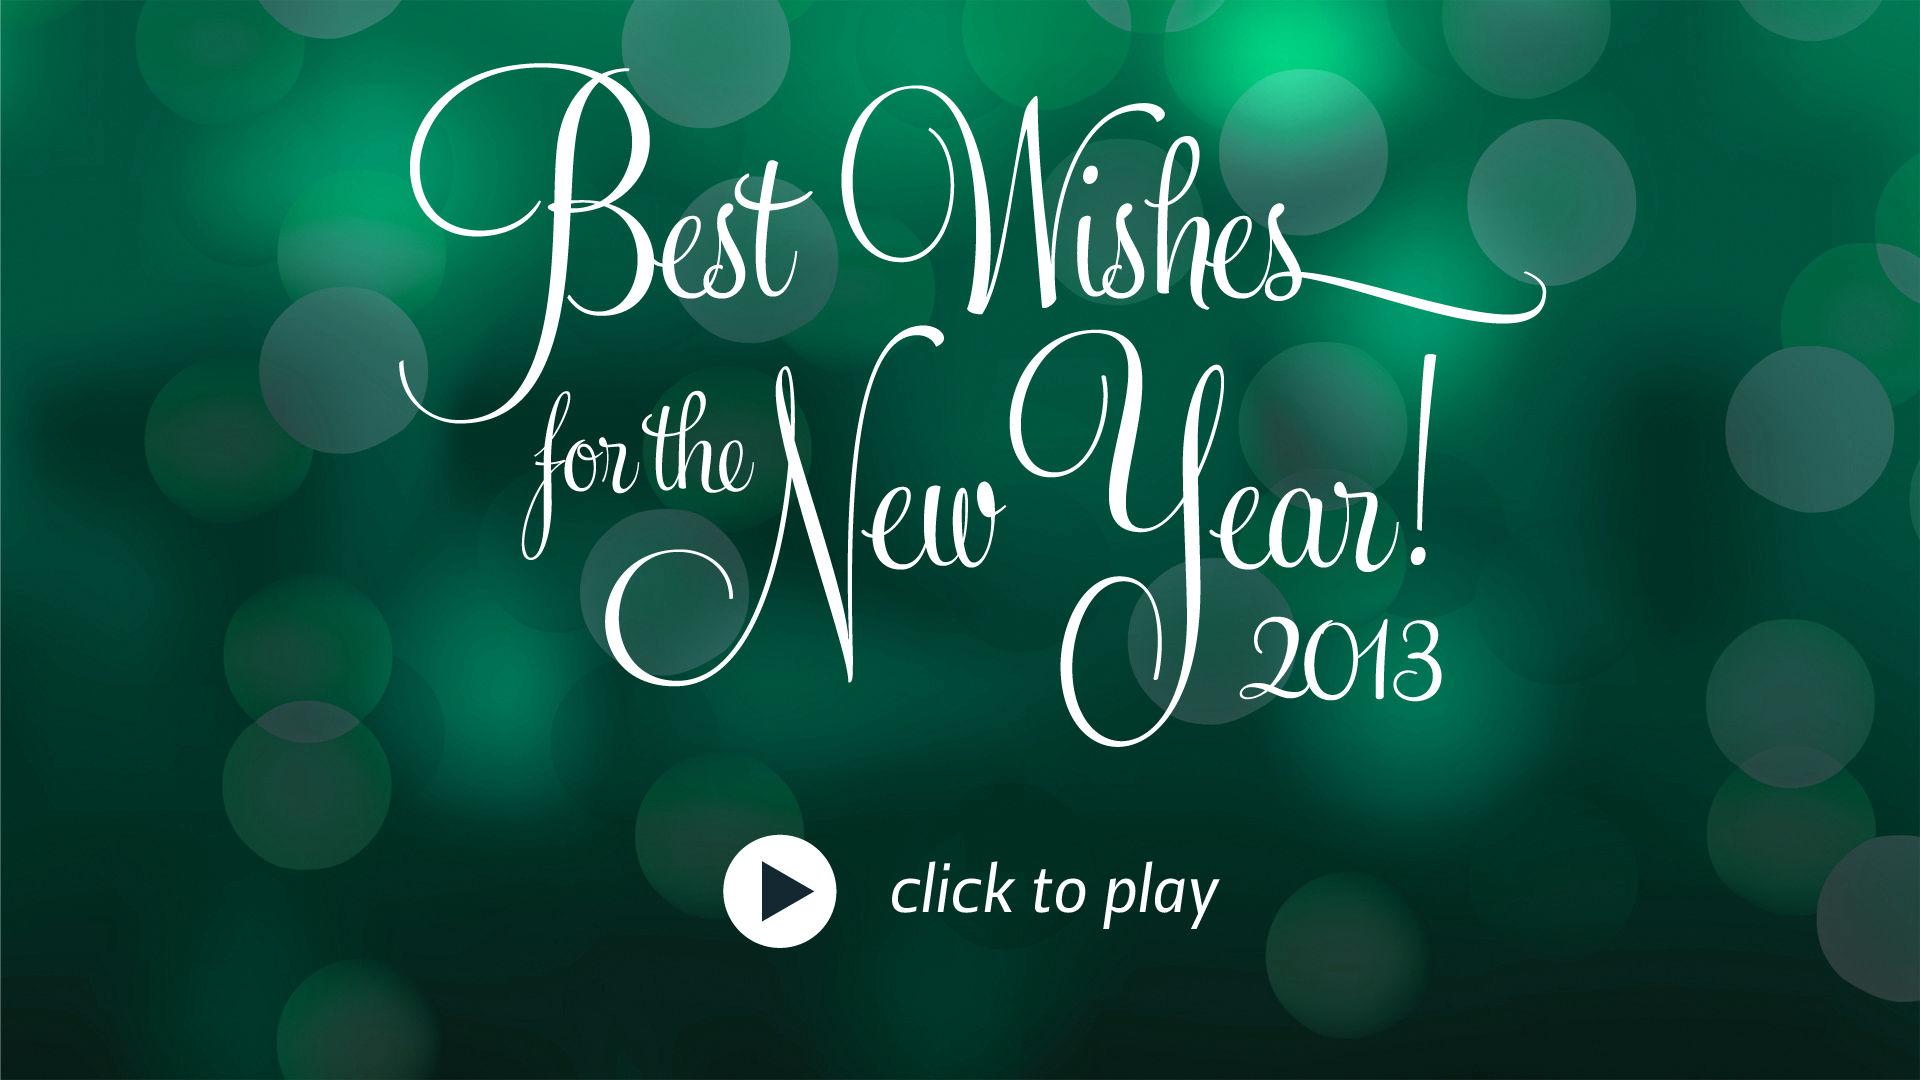 Best Wishes for the New Year from the Baker Institute